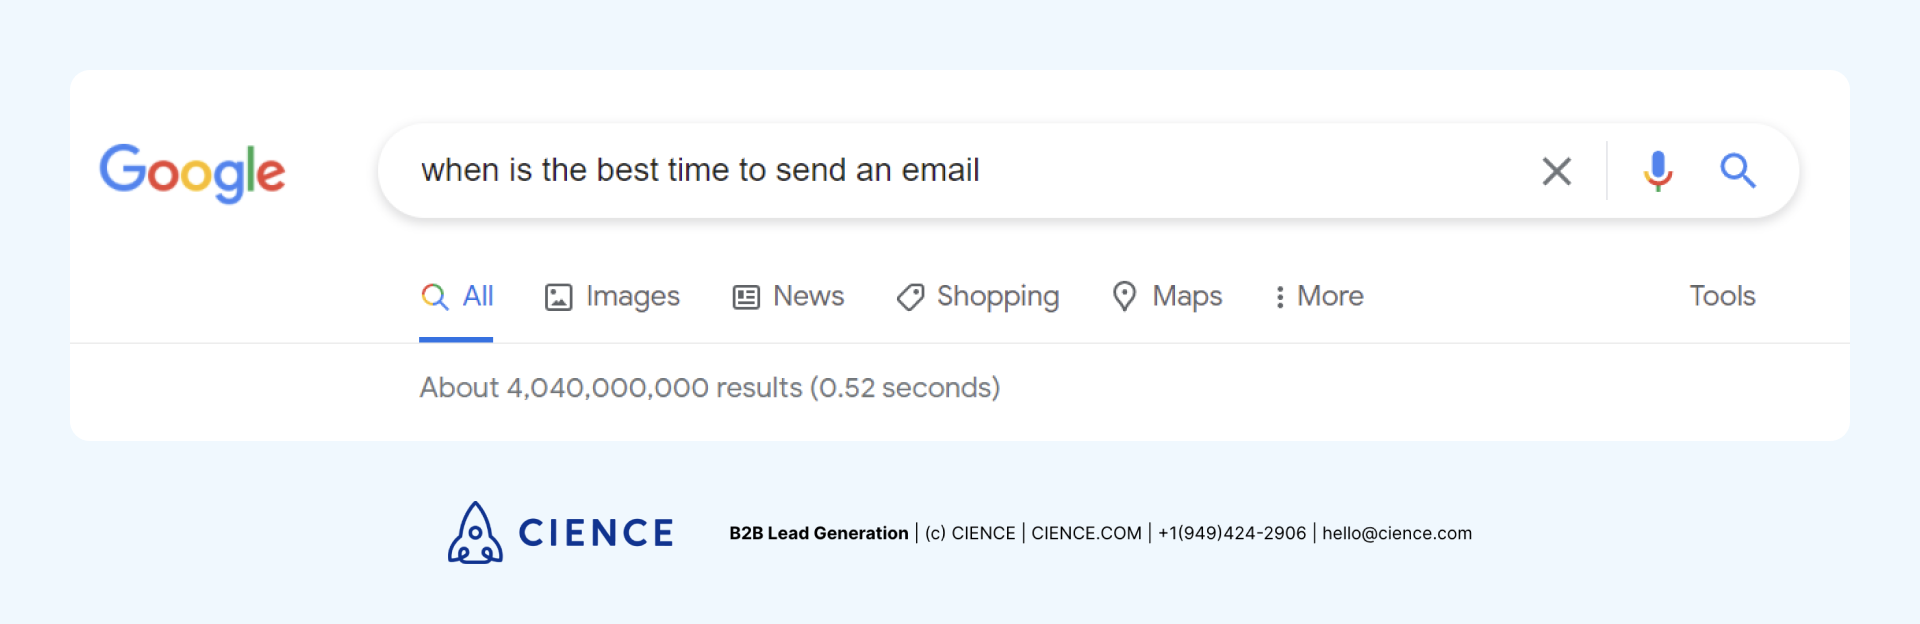 When is the best time to send emails?